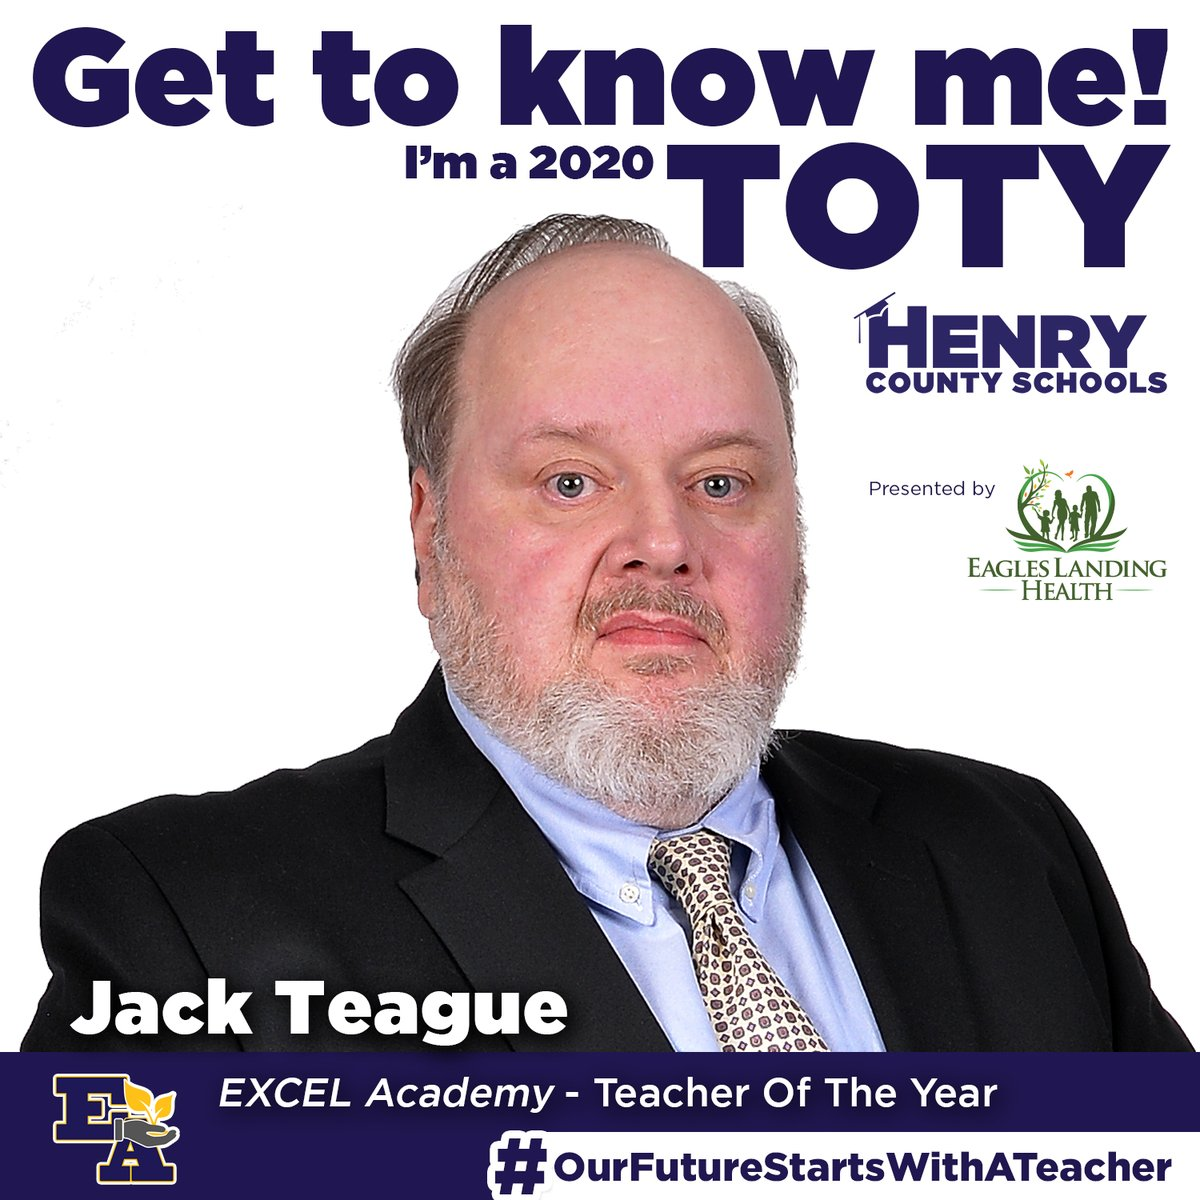 Our next Teacher of the Year, from @EXCELAcademyHCS, is Jack Teague!  Congrats to Mr. Teague! #OurFutureStartsWithATeacher  TOTY Sponsor: @ELHGeorgia